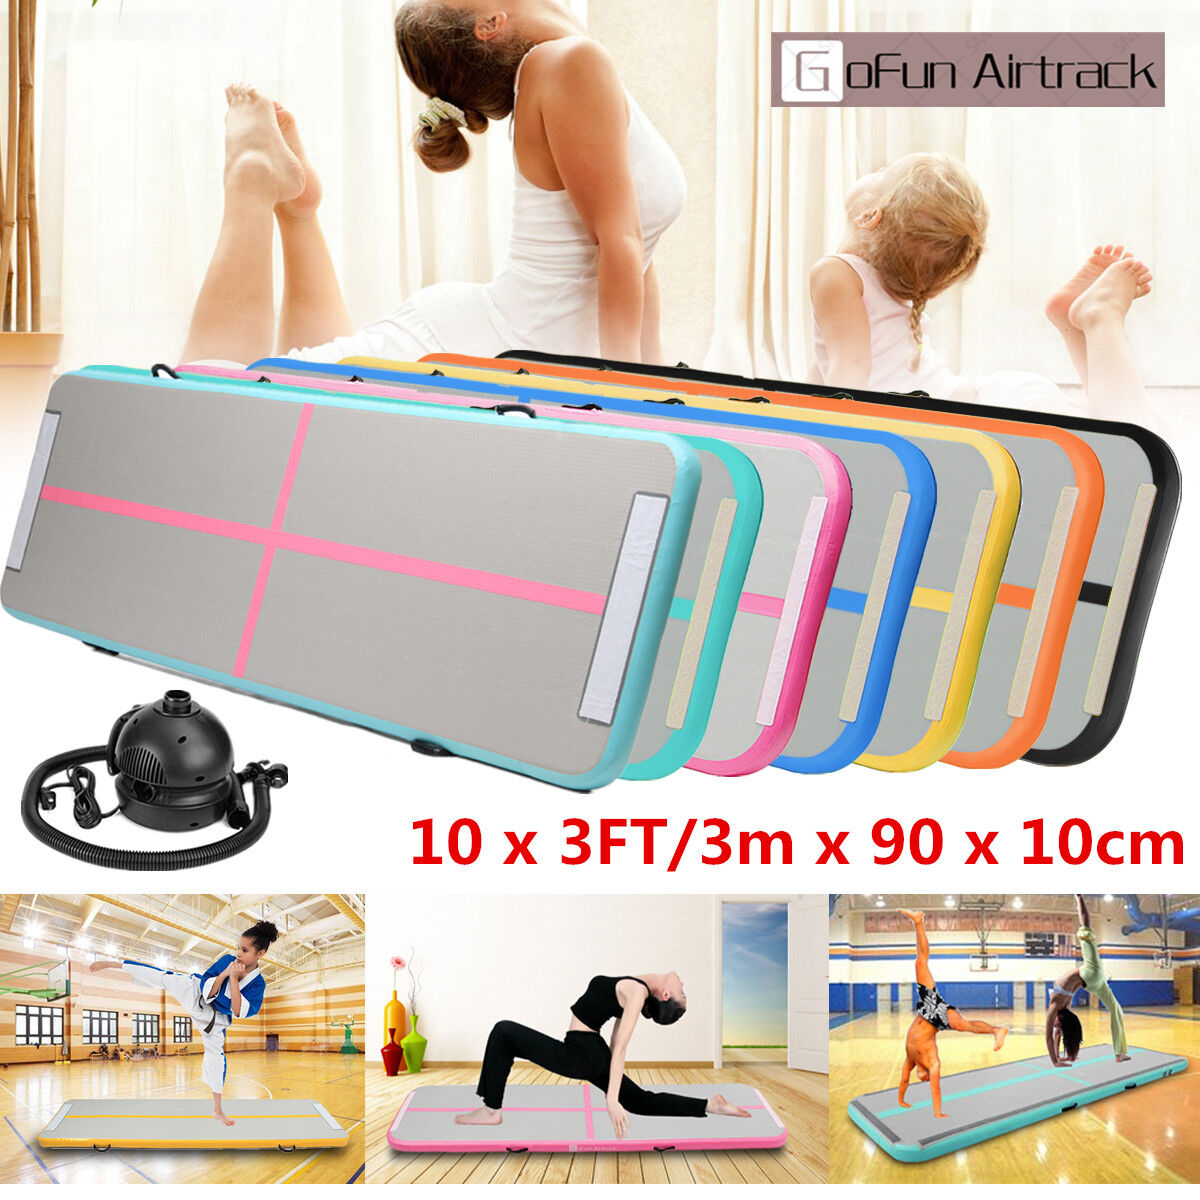 10x3Ft Airtrack Inflatable Air Track Floor Home Gymnastics Tumbling Mat GYM